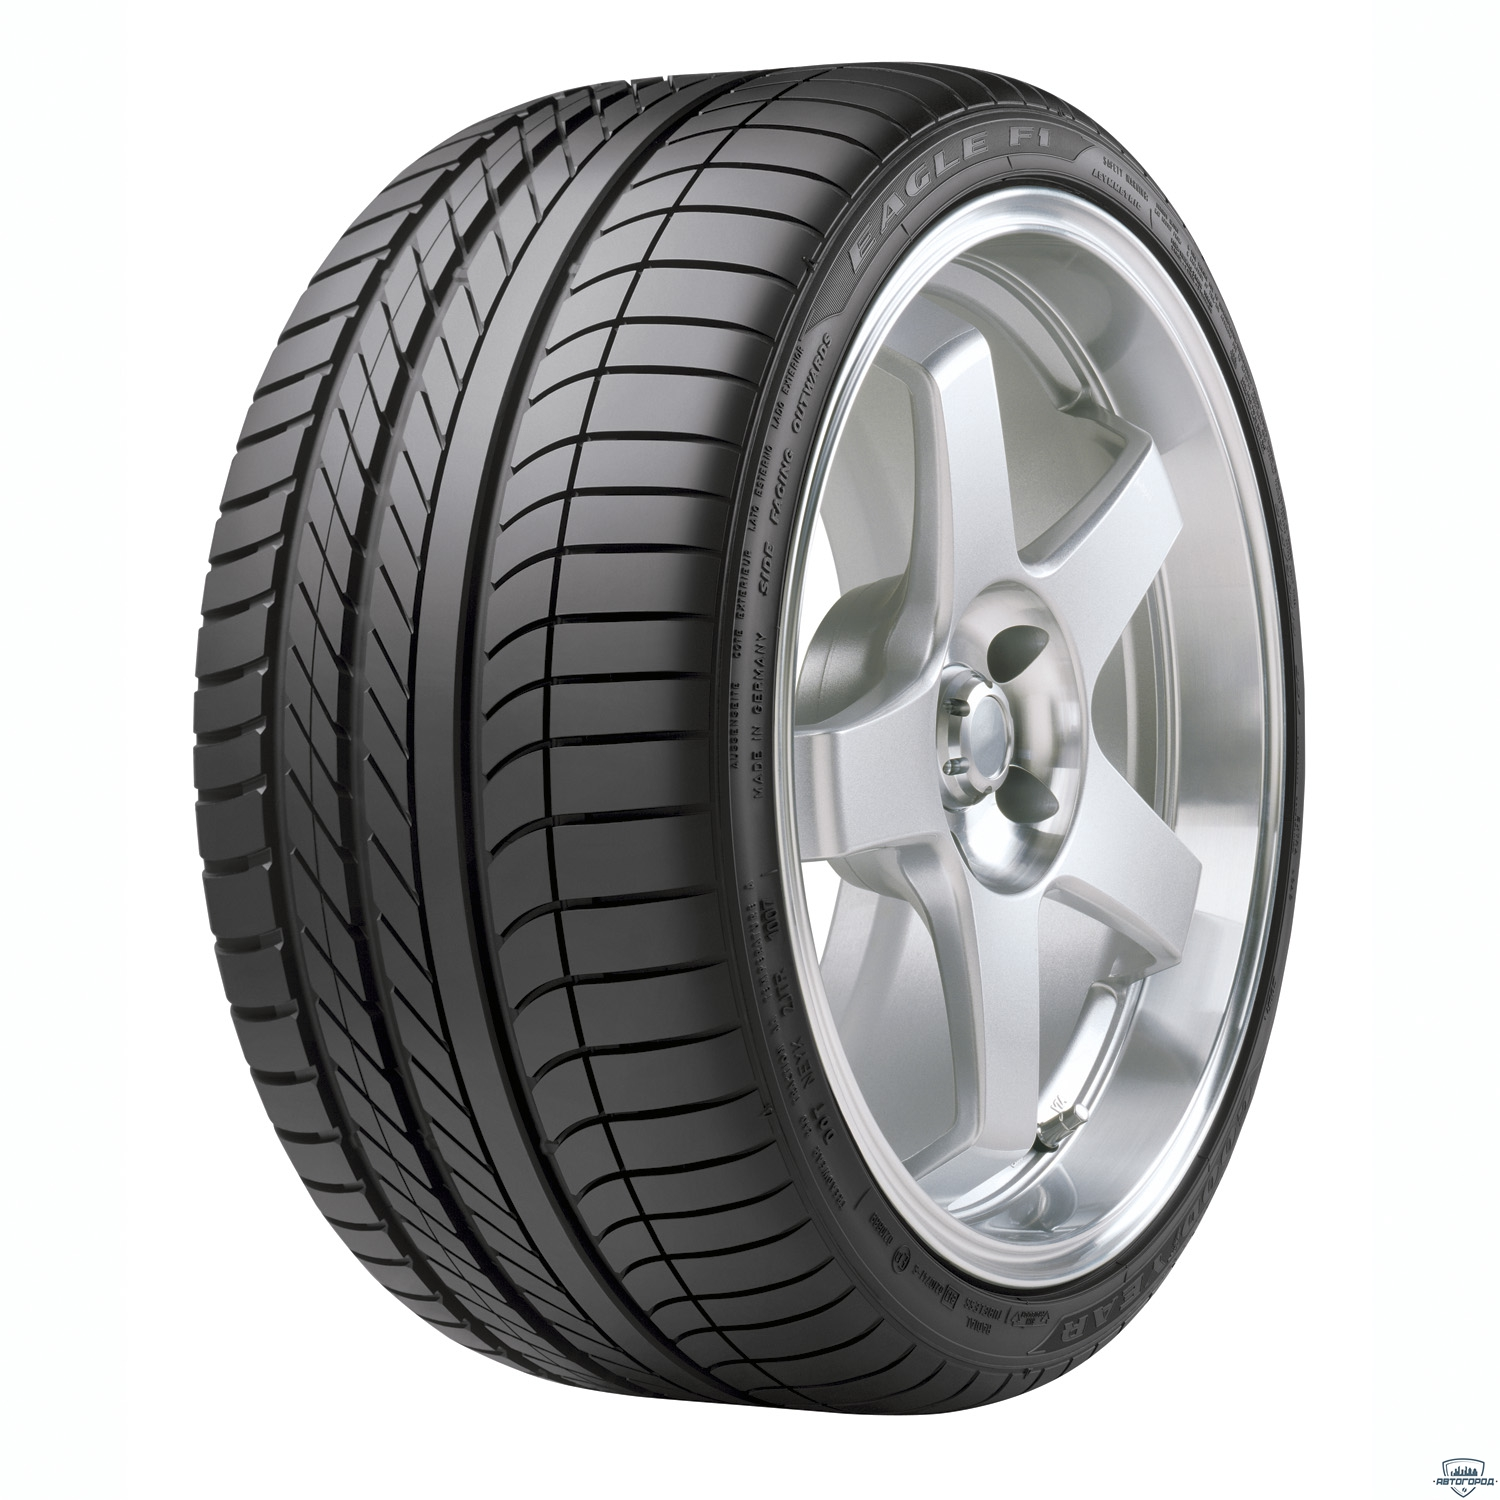 Шины Goodyear Eagle F1 Asymmetric SUV 275/45R20 110Y XL AO